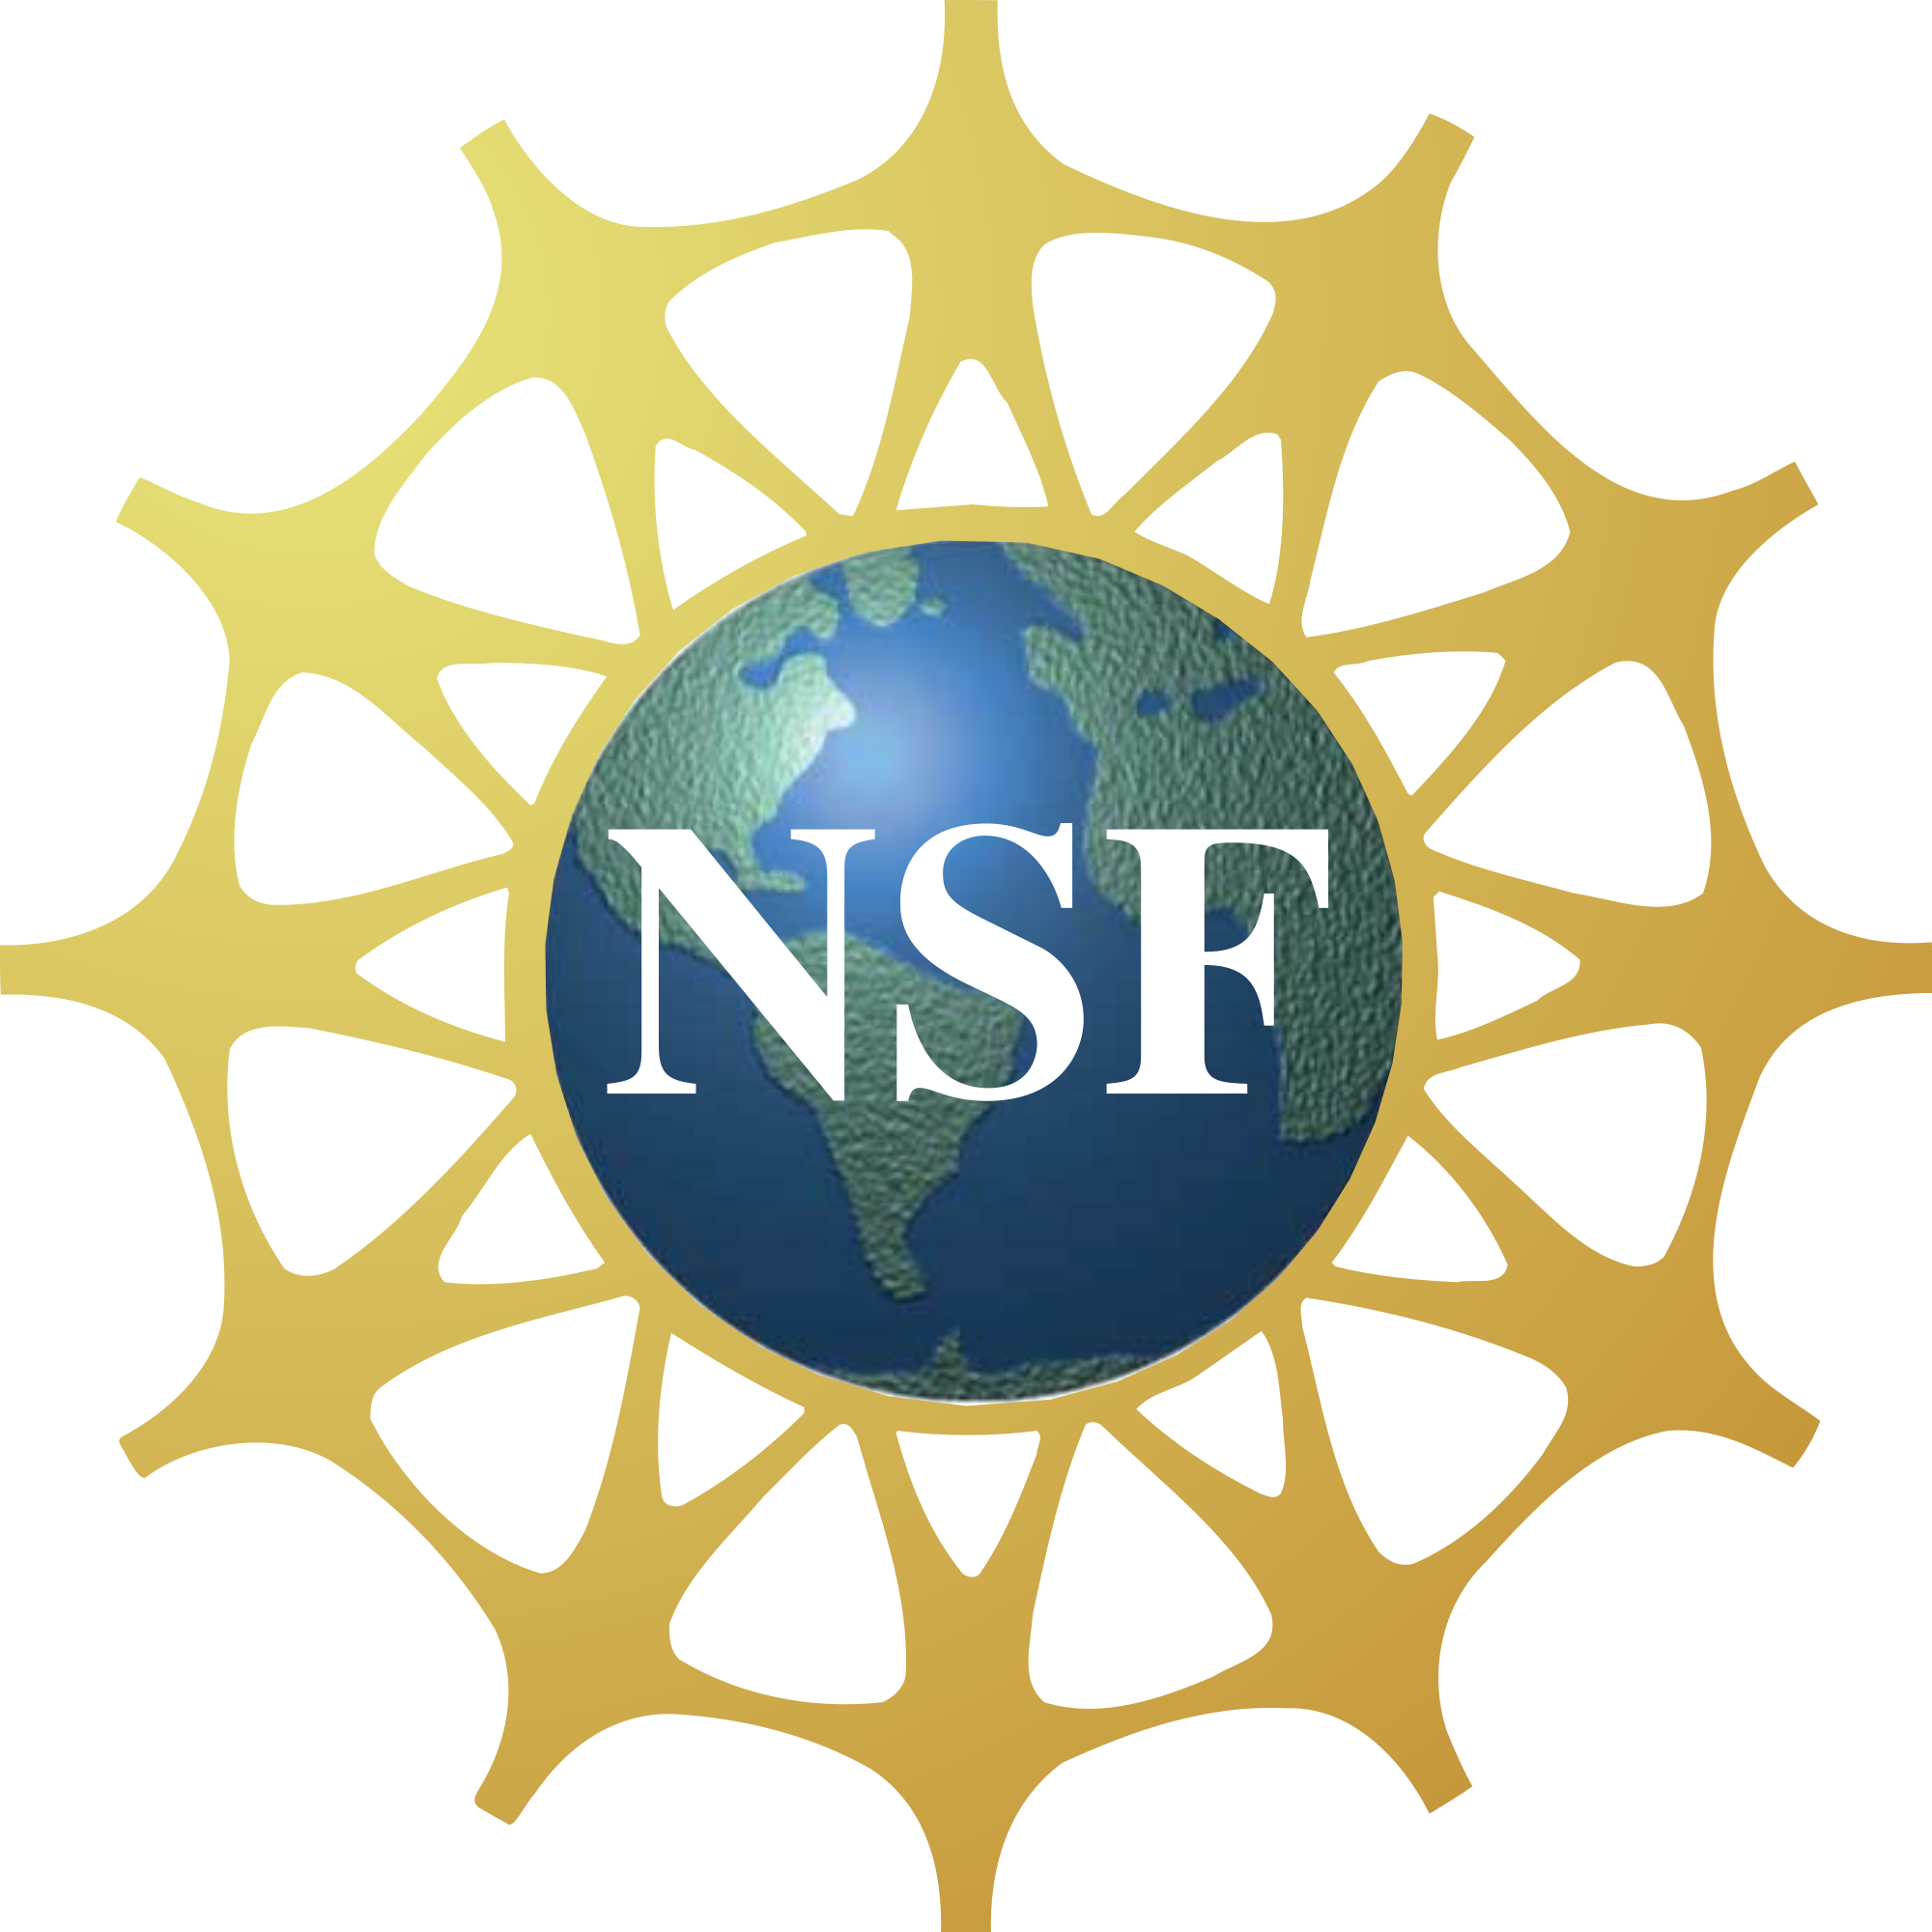 National science foundation logo png. Wikipedia nsfsvg